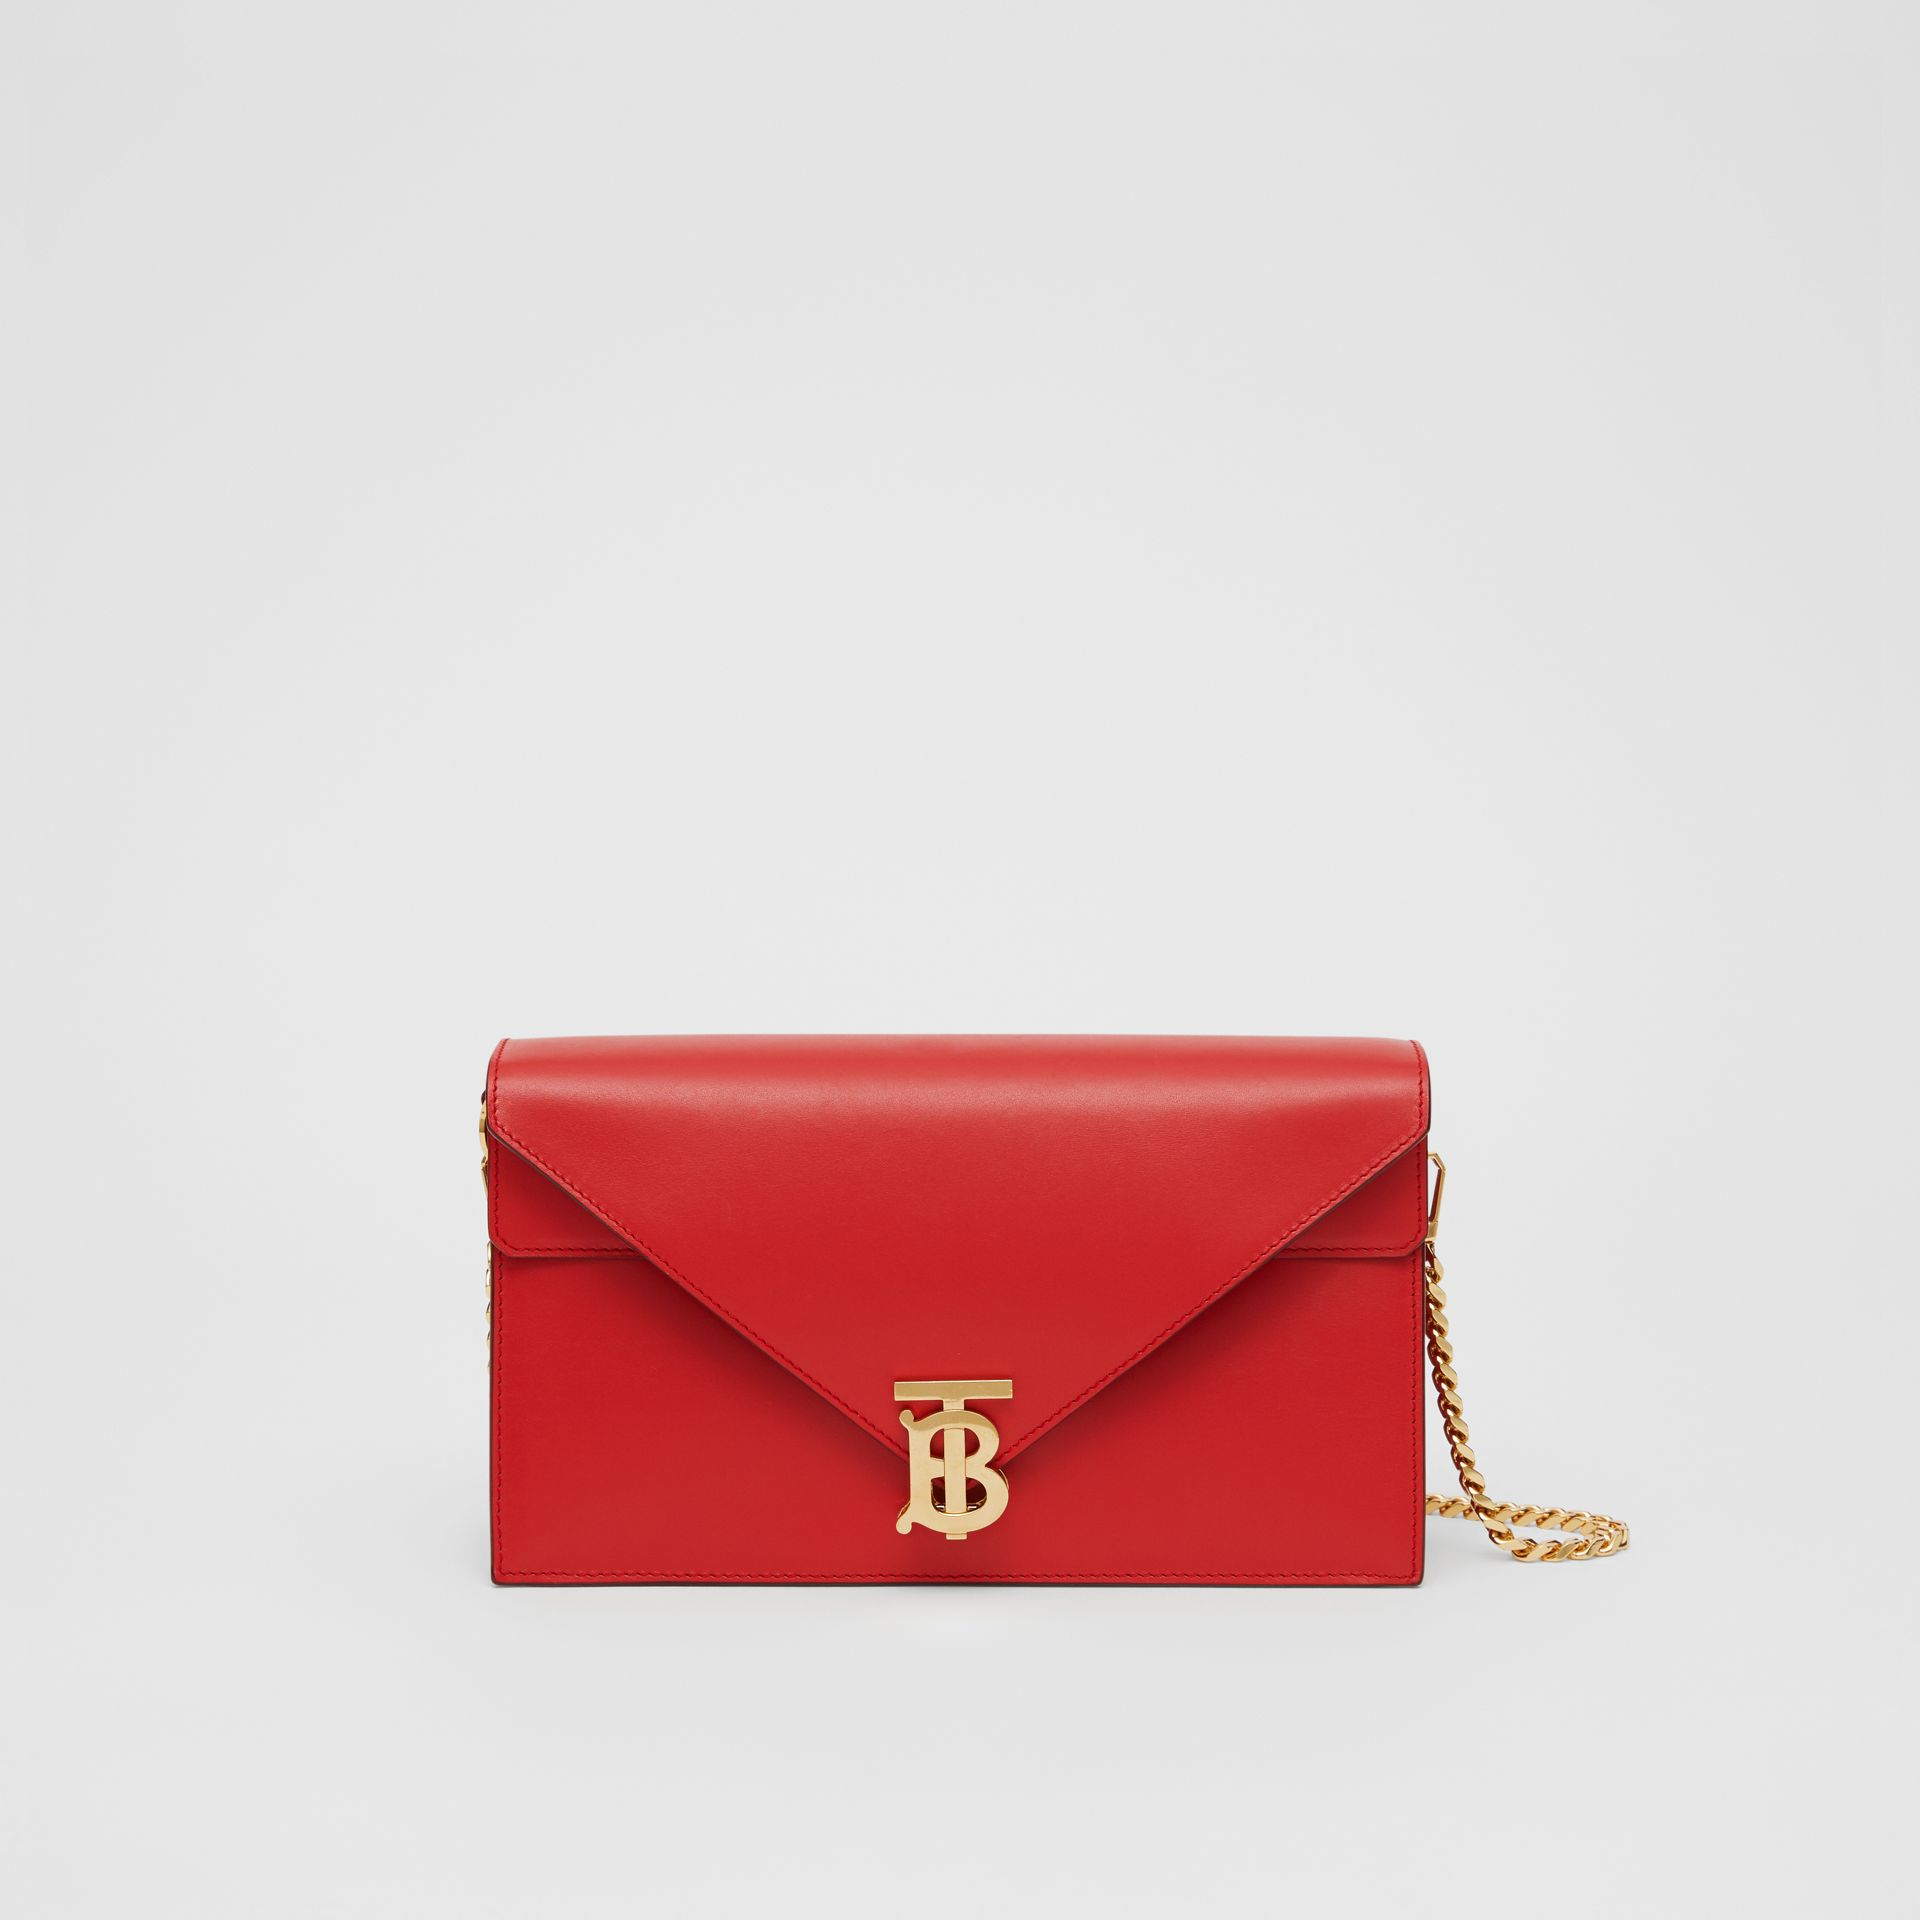 Small Leather TB Envelope Clutch in Bright Military Red - Women | Burberry - gallery image 0